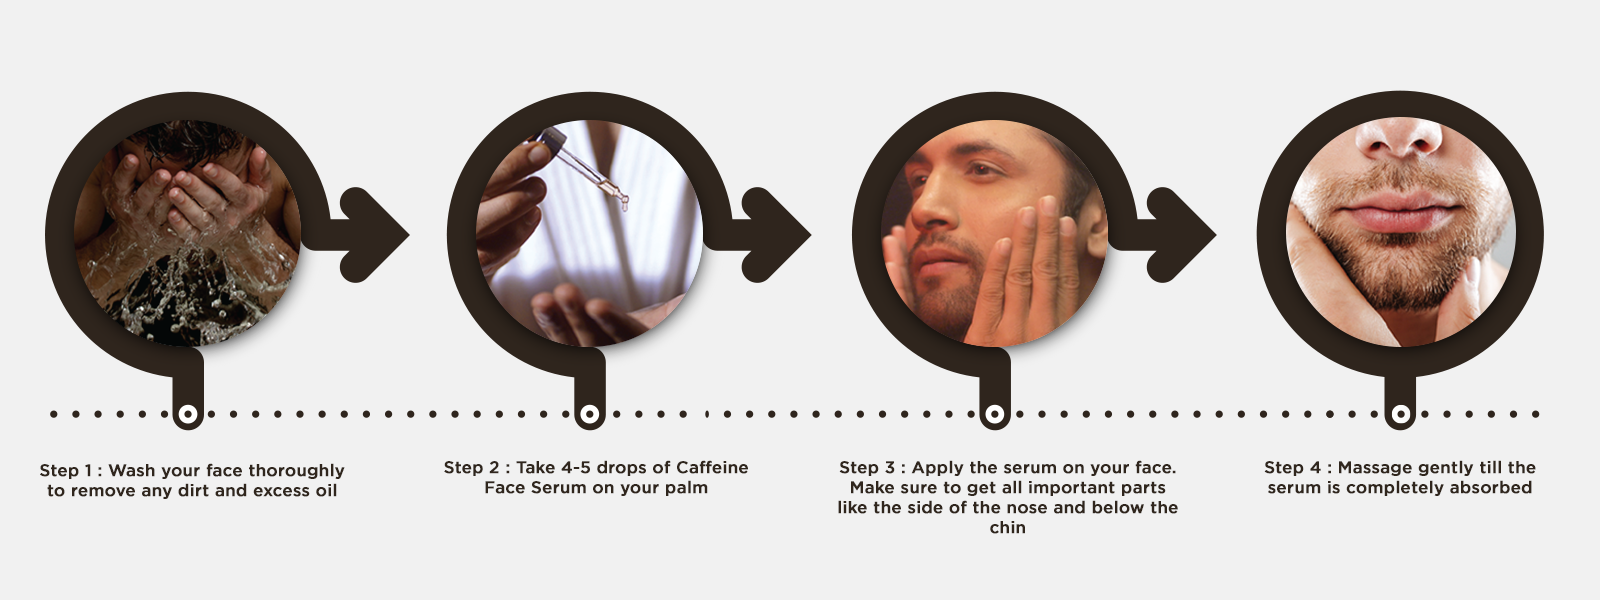 How to use coffee face serum